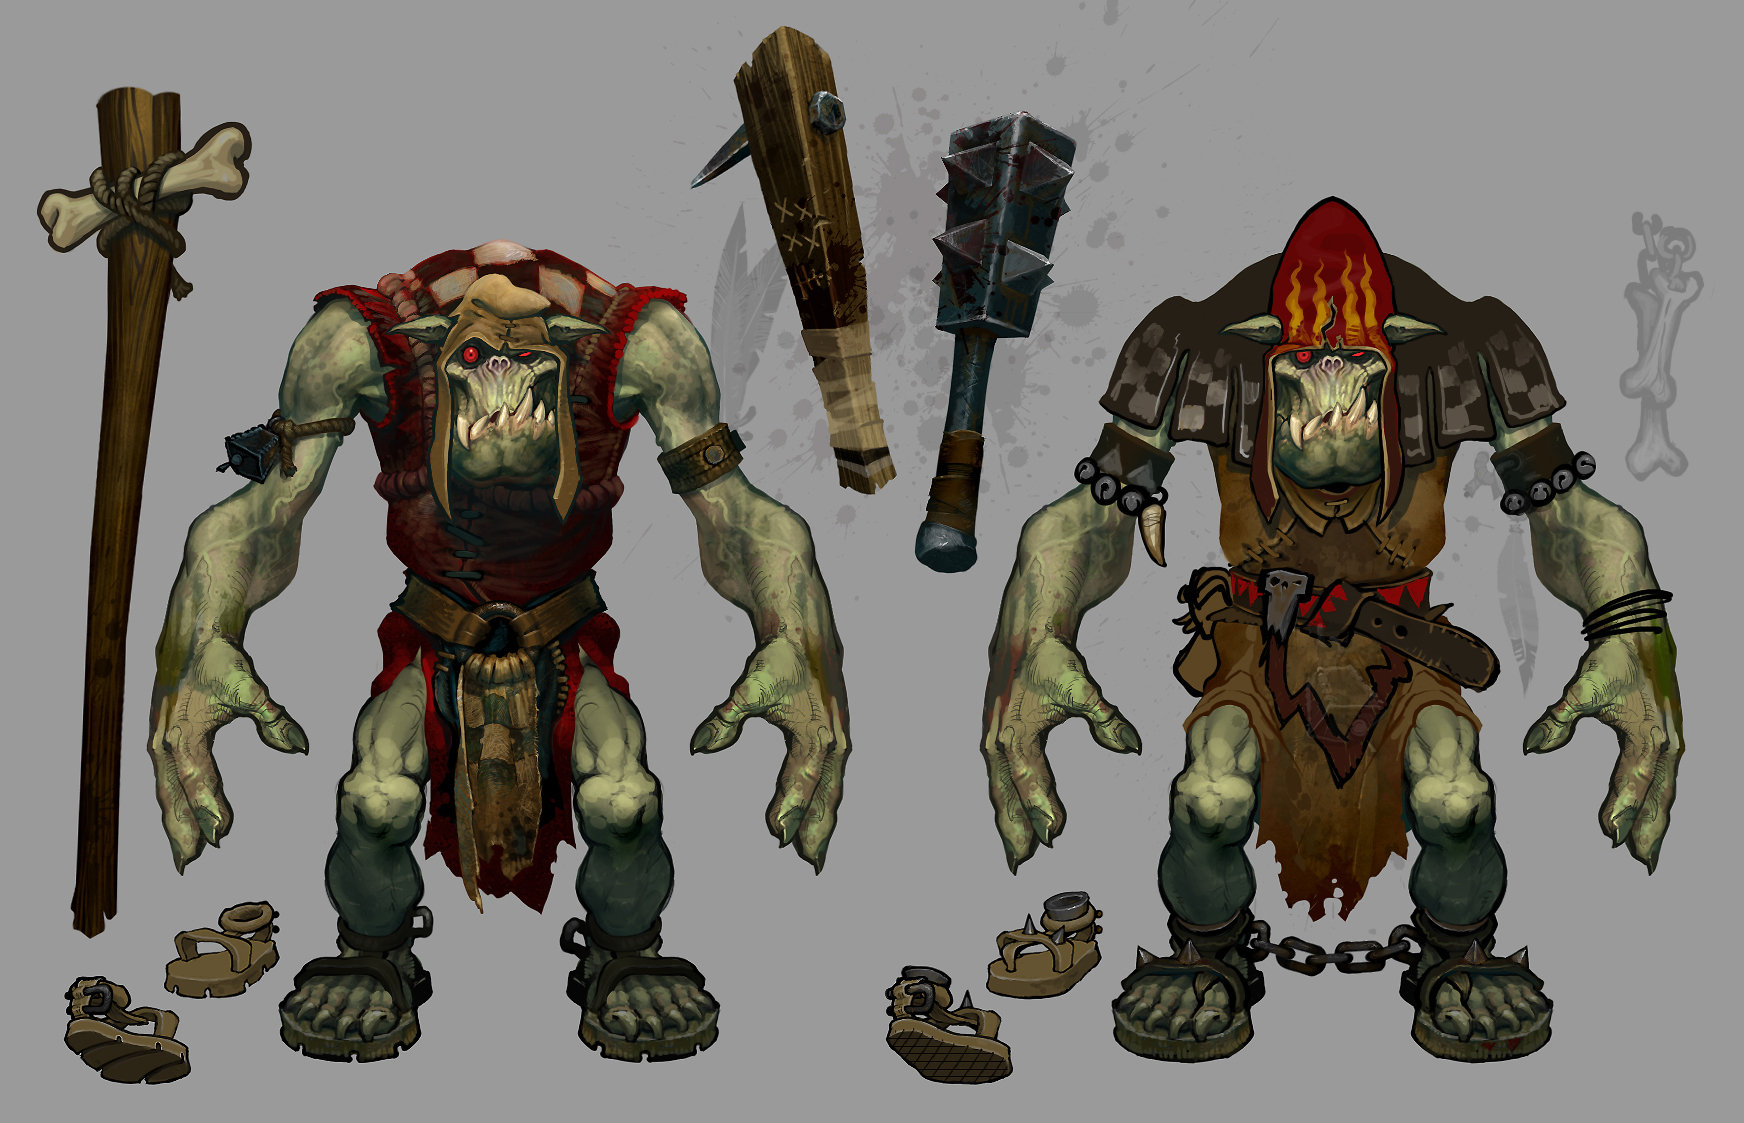 """Low tier, entry level Ork Weirdboyz, the """"MMO Caster class"""" in leather armor. Early on in development the armors were set up in light, medium and heavy categories."""